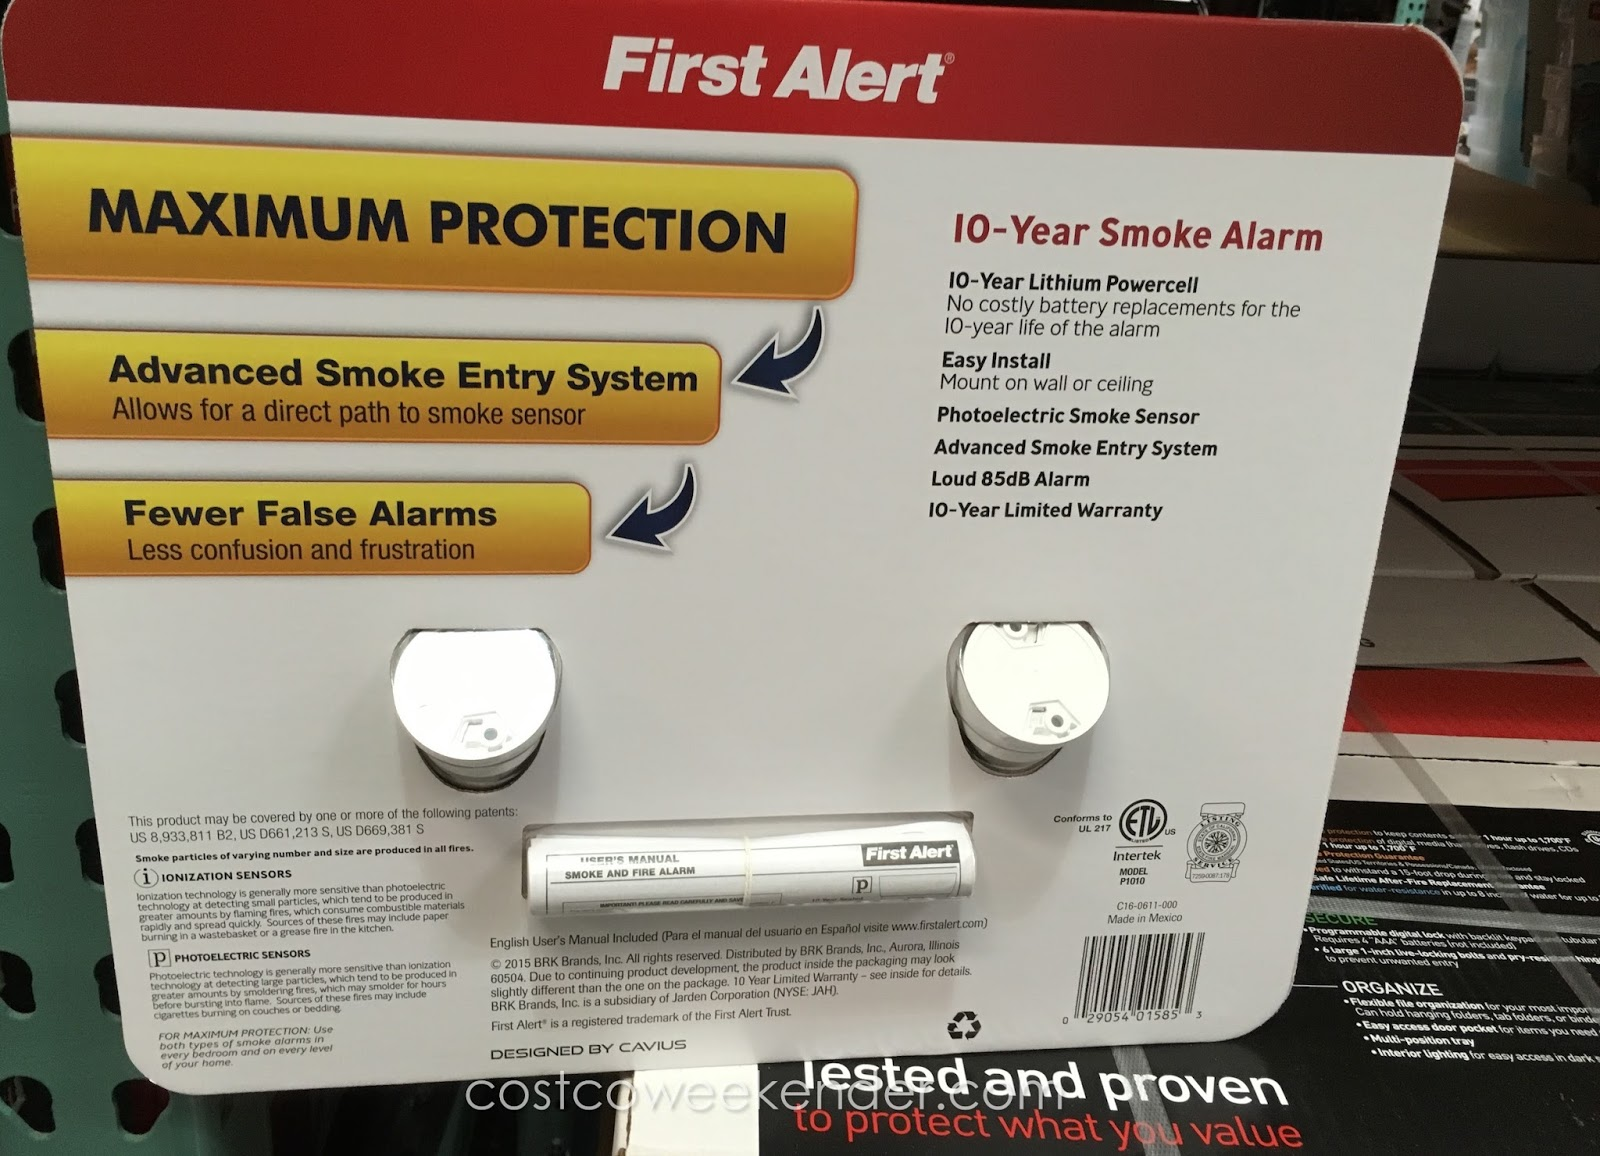 First Alert First Alert Atom 10 Year Smoke And Fire Alarms 2 Pk